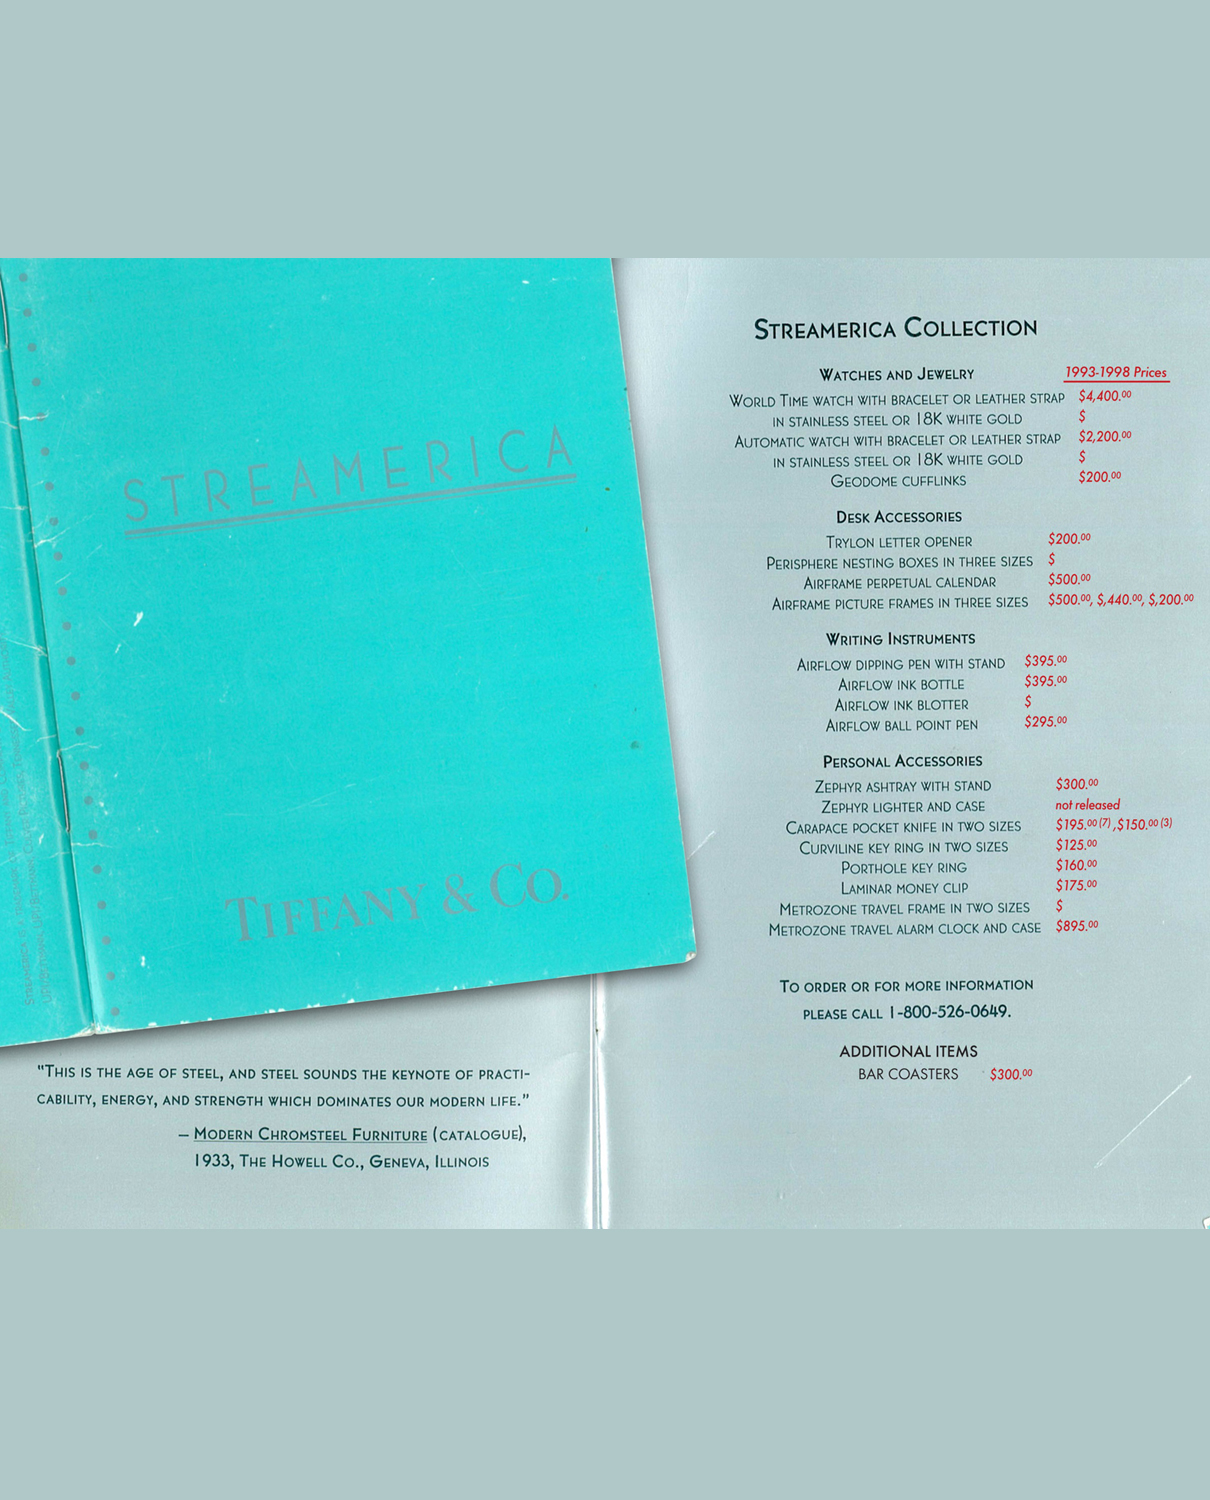 The backpage of the 1993 Streamerica Catalog listing the complete line of Accesories by Tiffany & Co. retail prices List